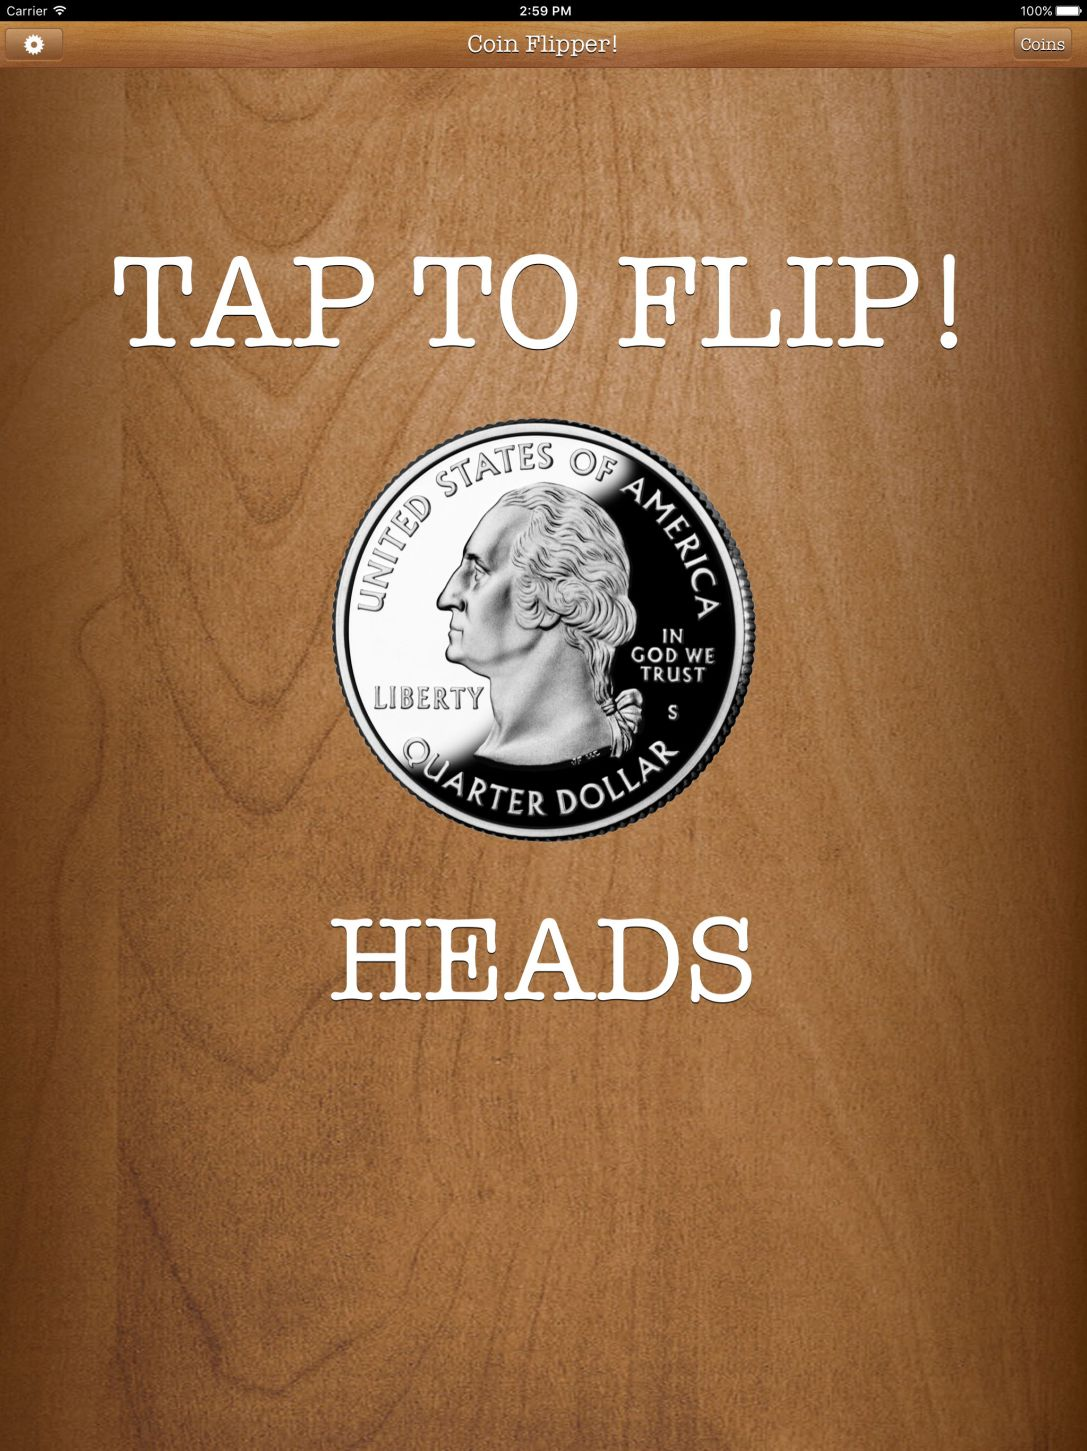 Flip a Coin App iPad Pro screenshot quarter on heads.